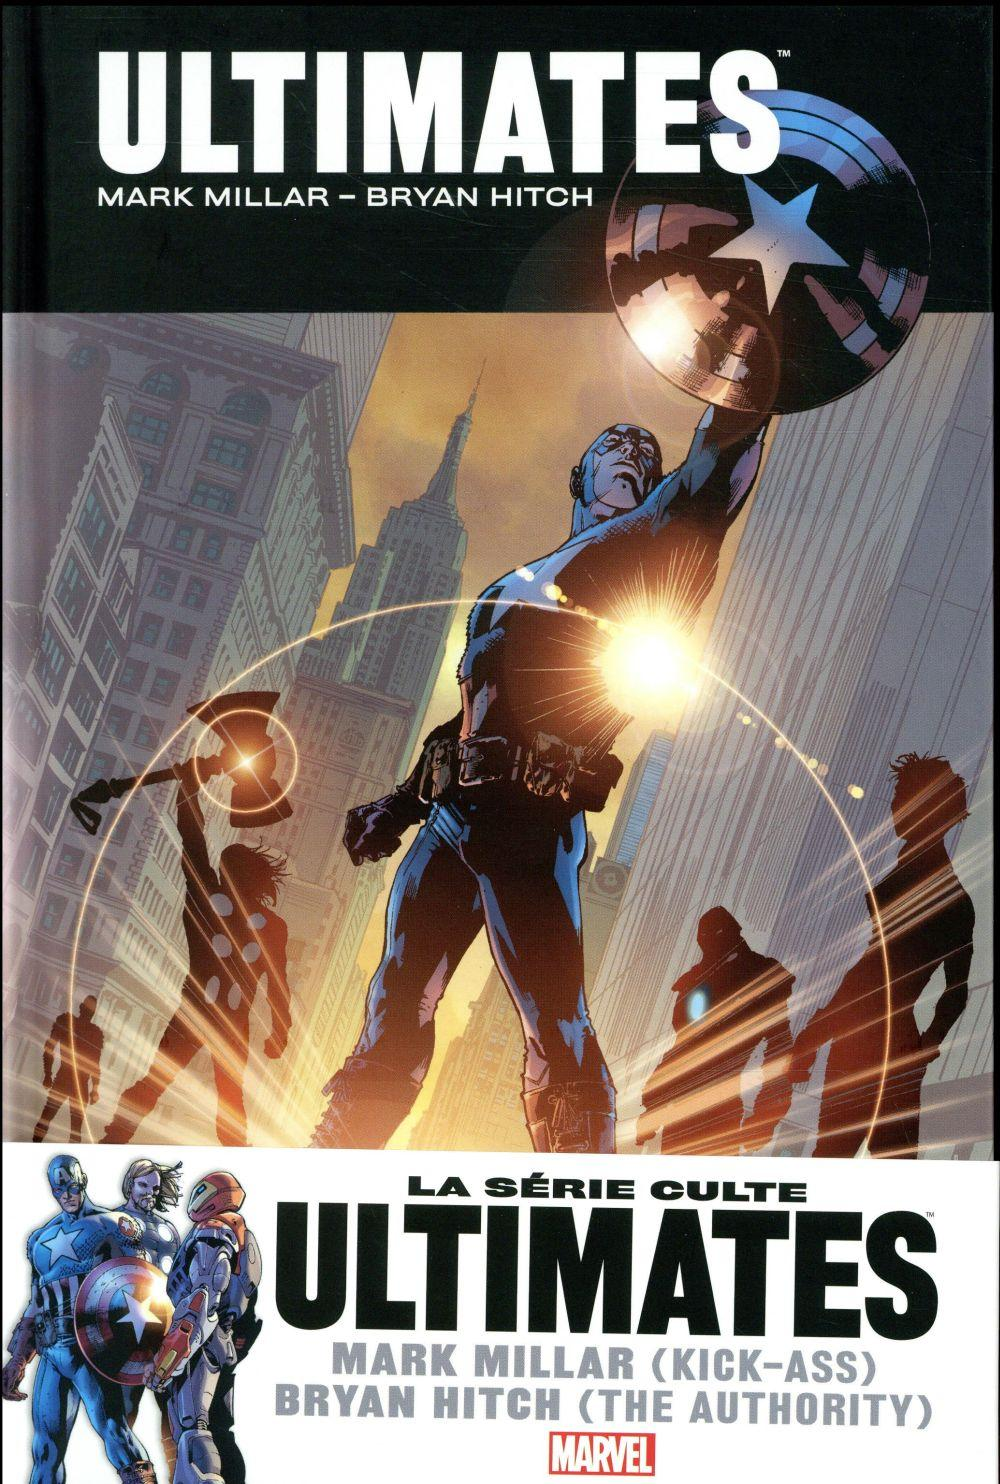 Ultimates t.1  - Mark Millar  - Bryan Hitch